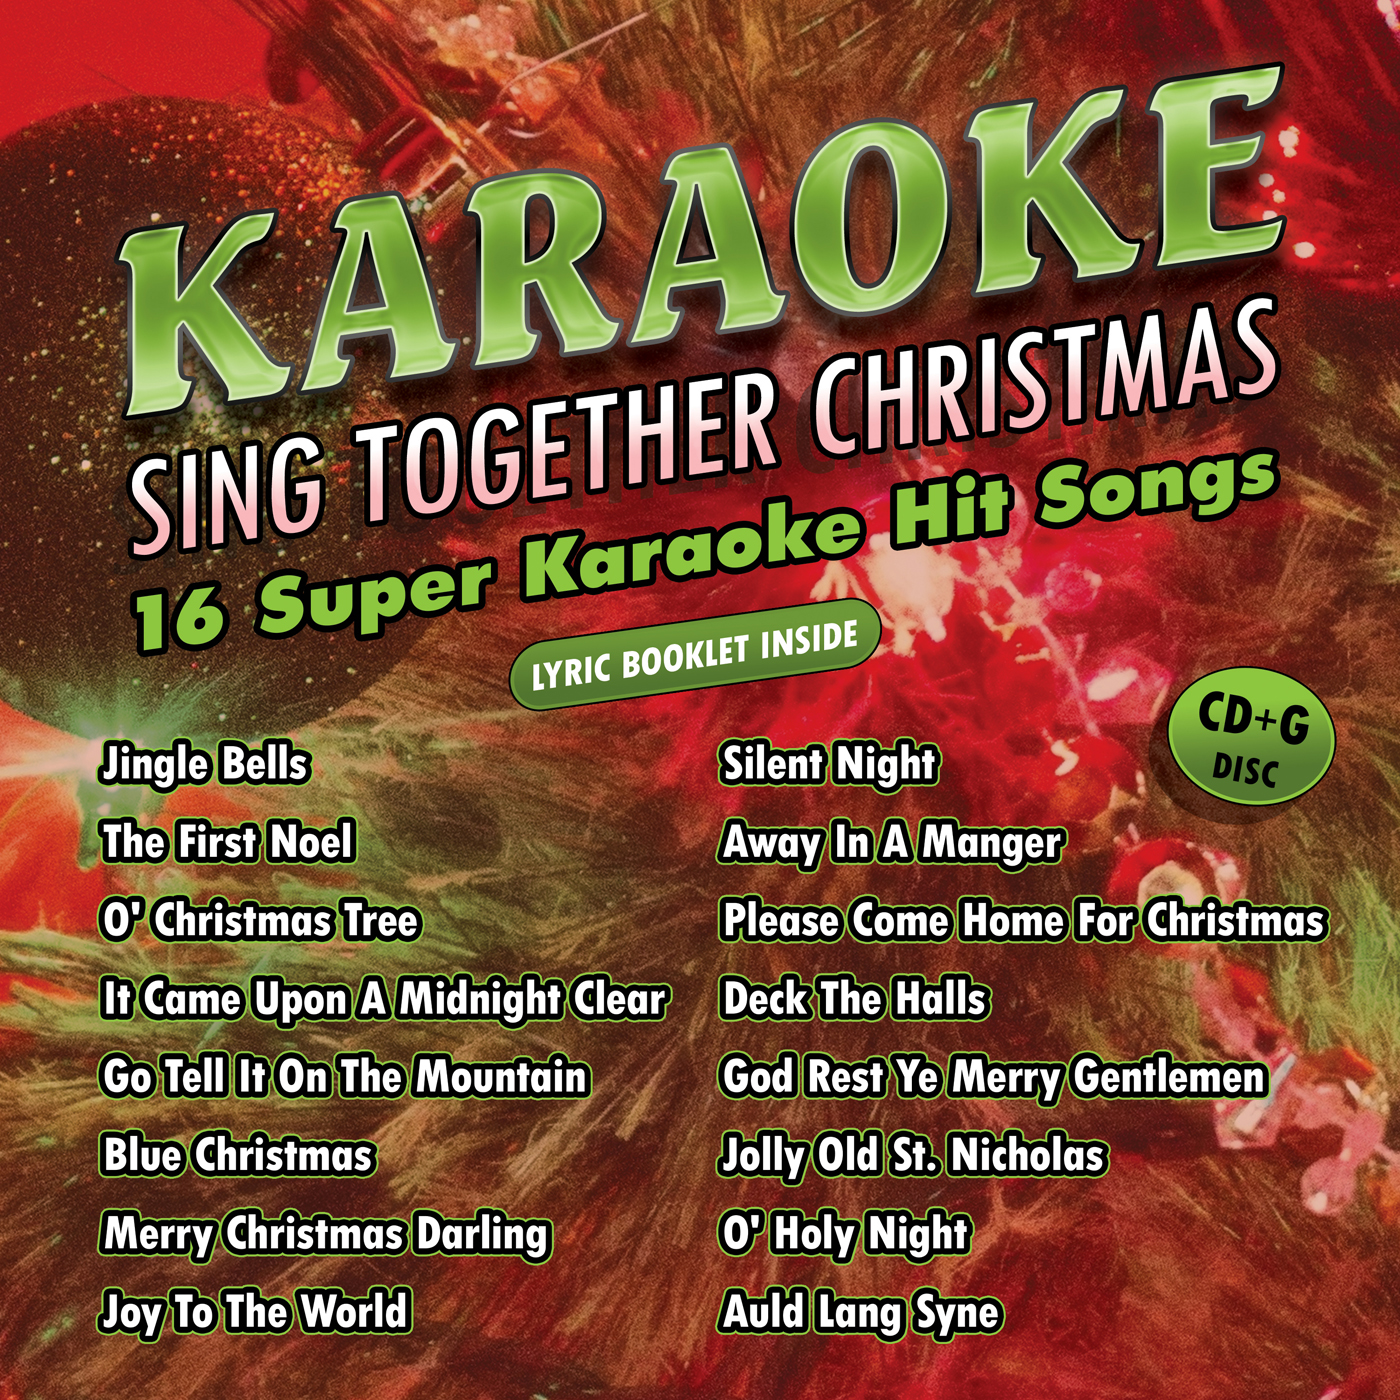 karaoke cloud cdg sing together christmas - Blue Christmas Karaoke